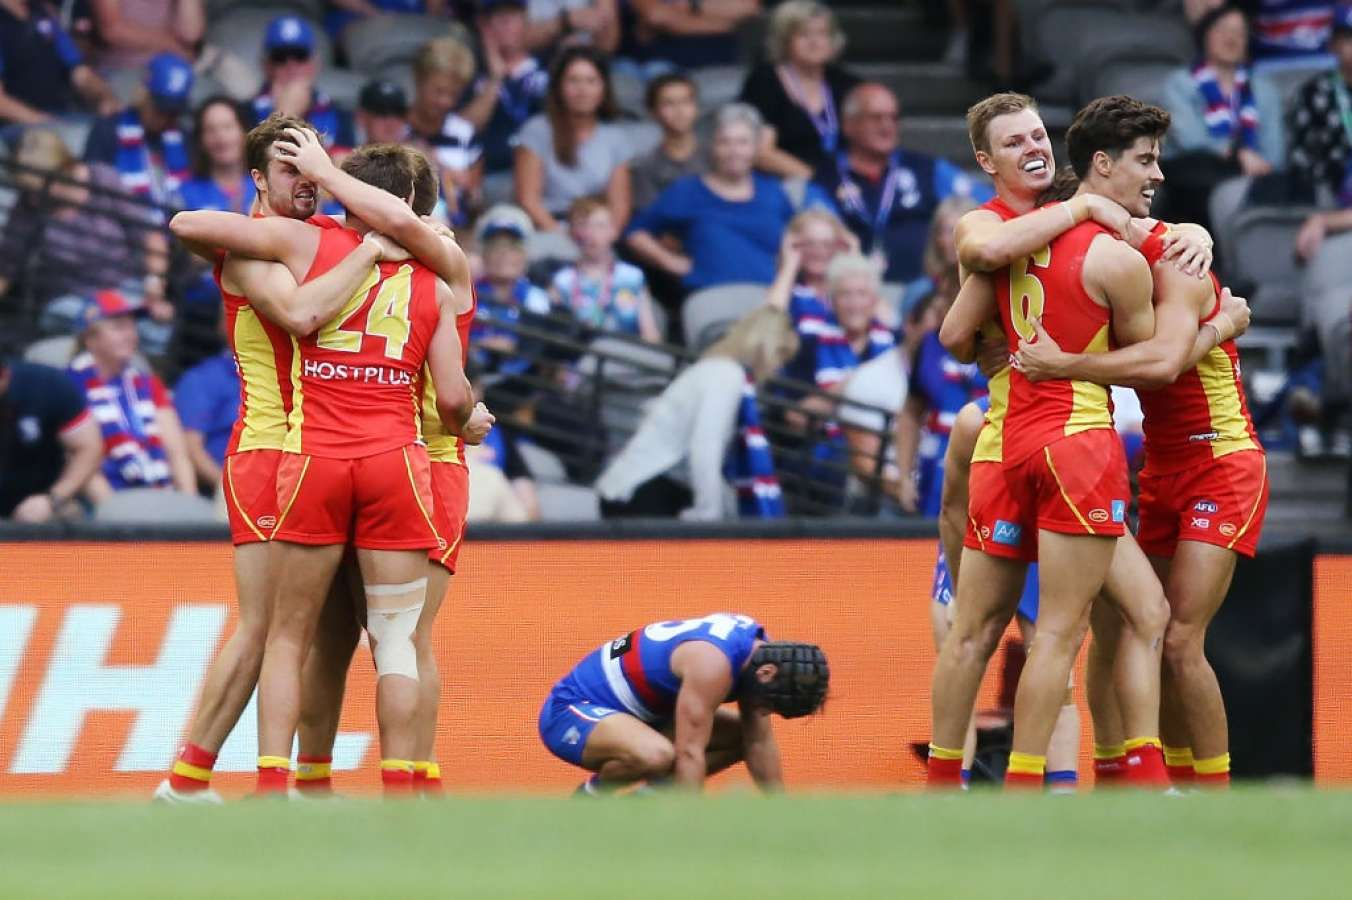 Afl betting odds round 8 racing post betting site results www